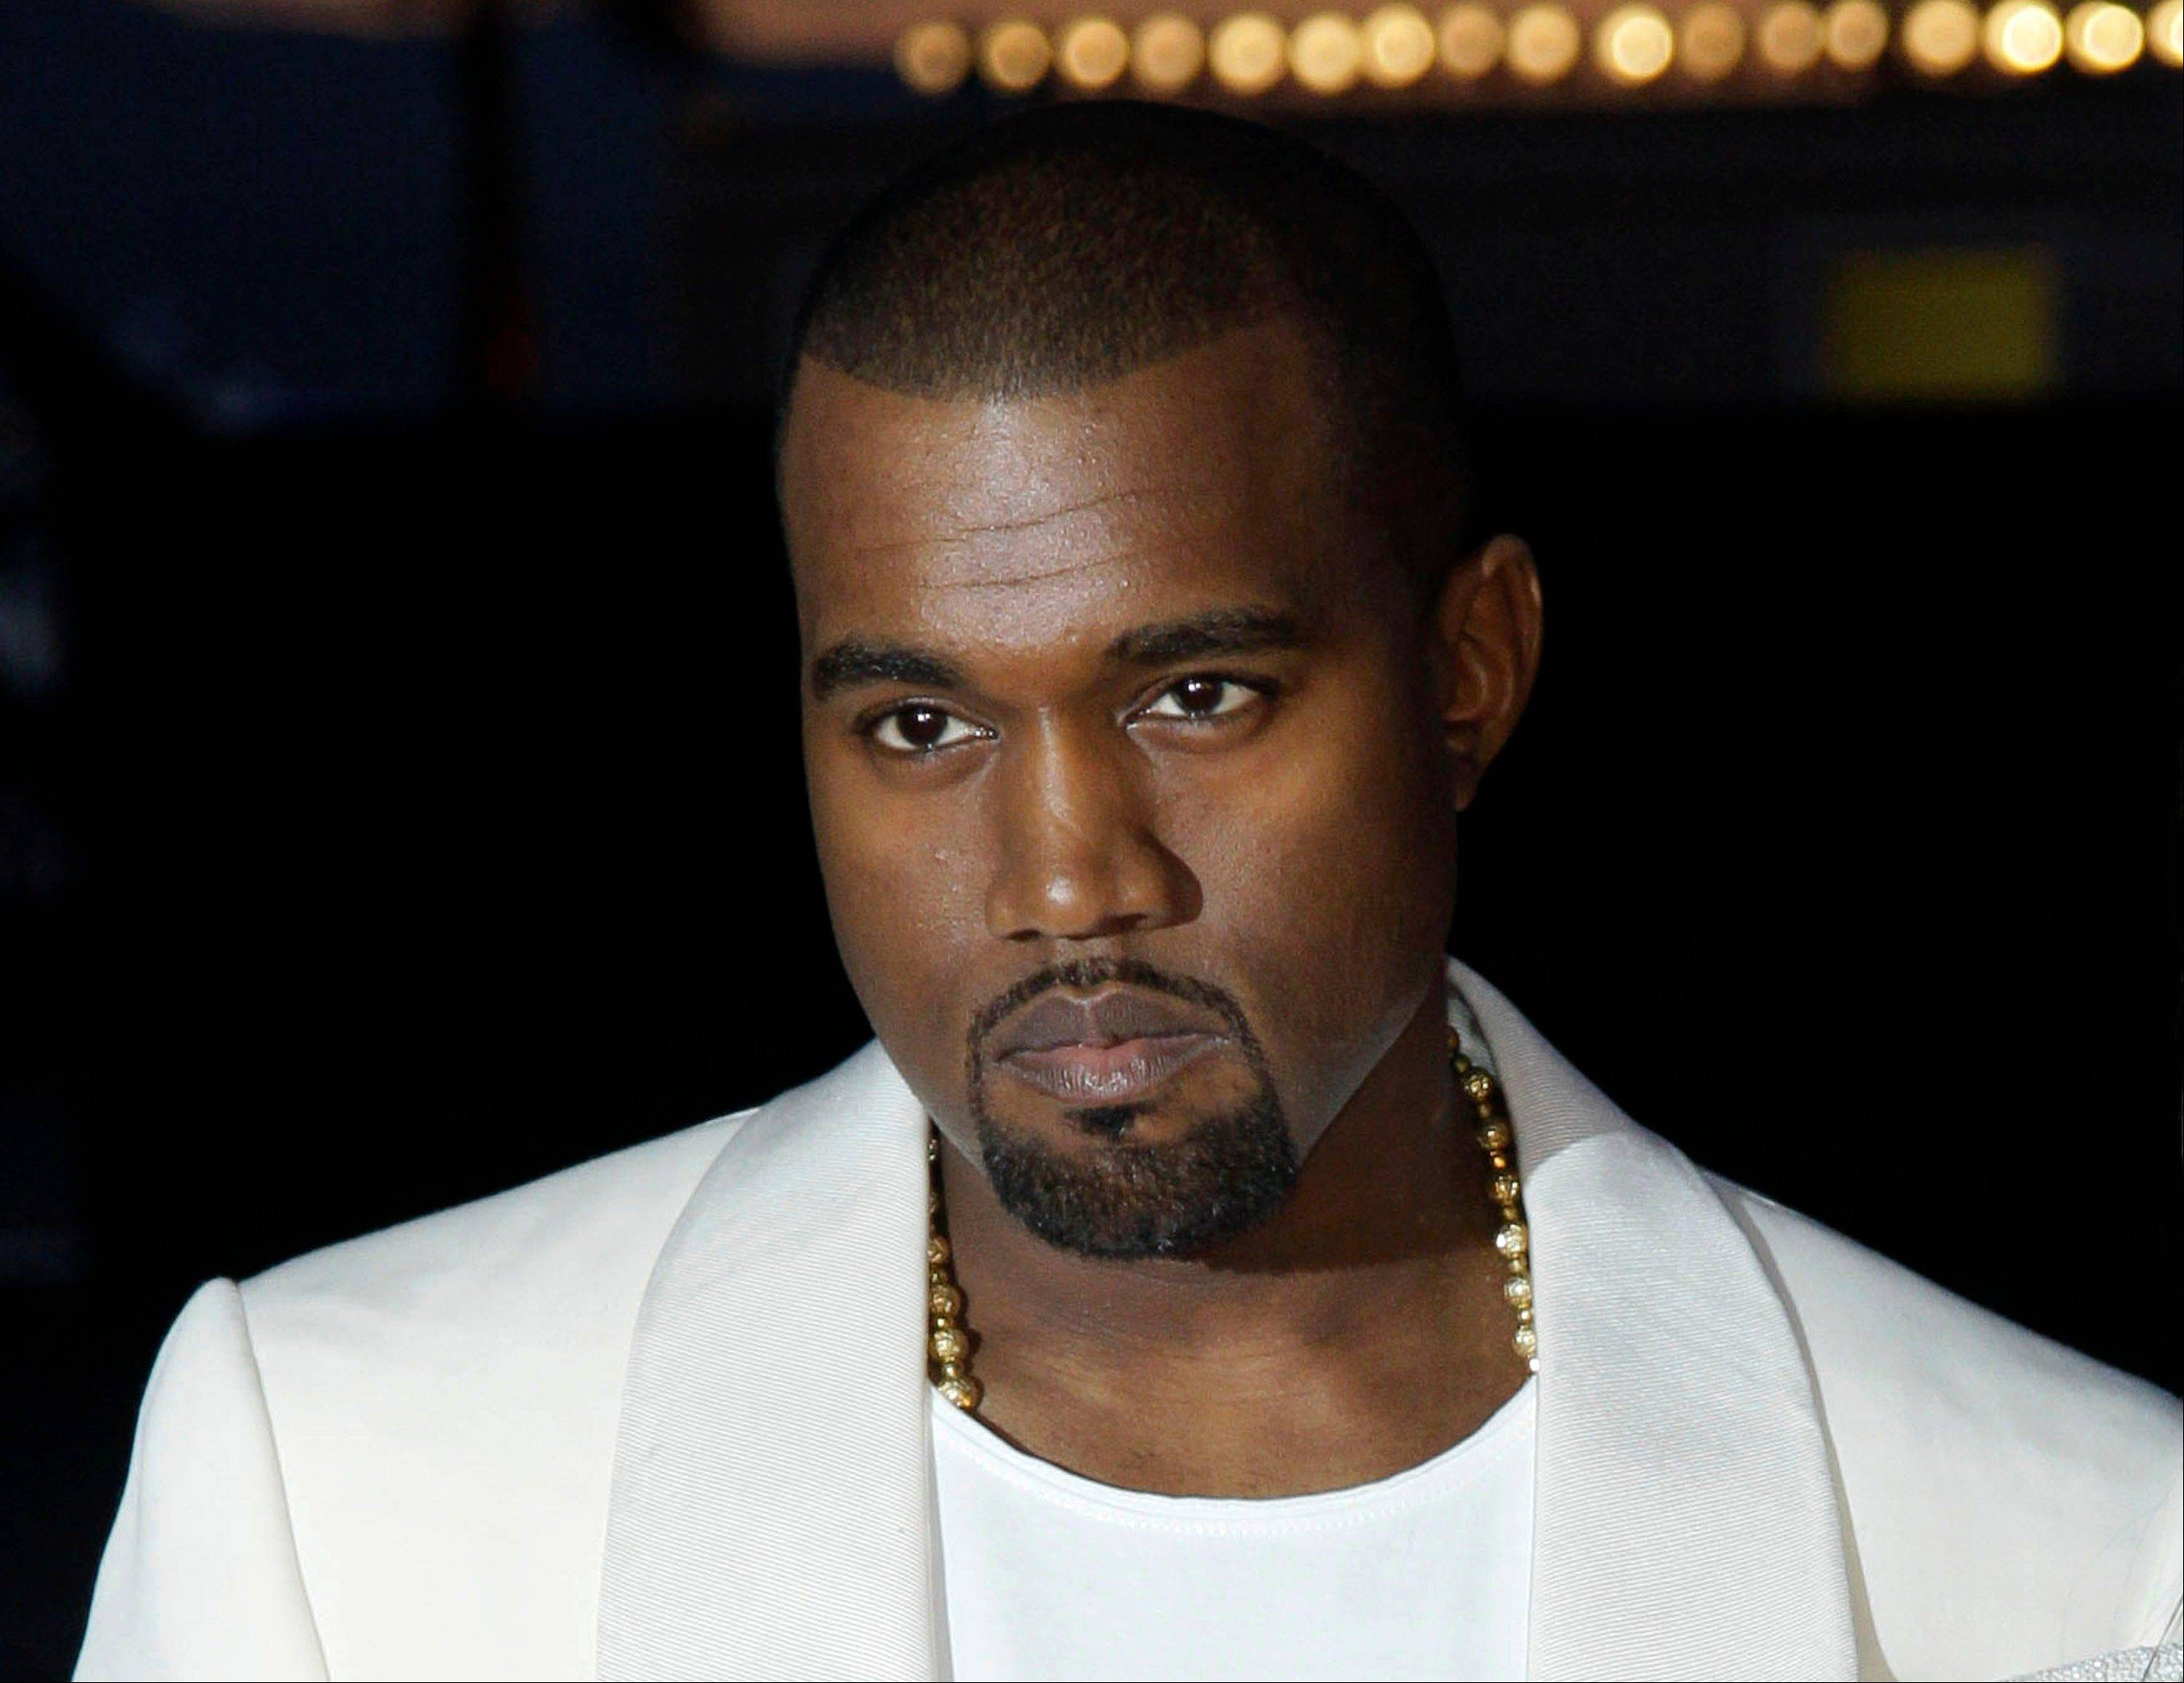 ABC says Kanye West is appearing on Jimmy Kimmel�s late-night show Wednesday, less than two weeks after the pair got into what Kimmel called a �rap feud.�